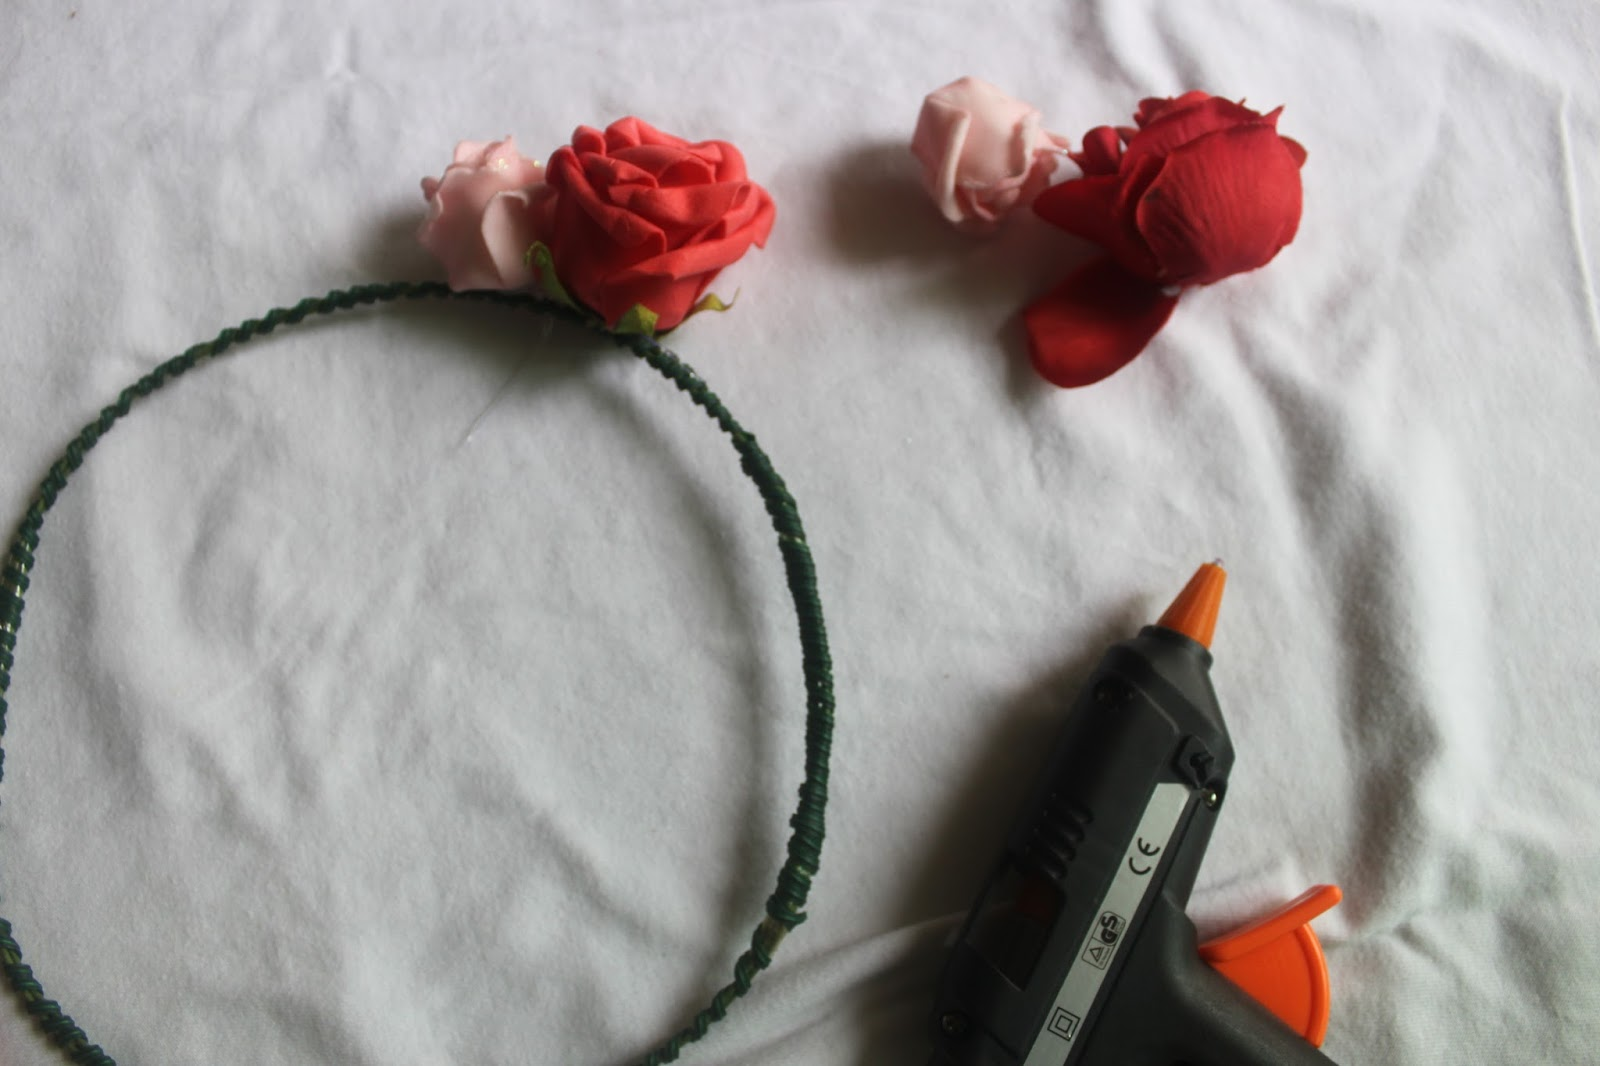 Originalrchi diy flower crown step 6 just shoot press out the glue from the gun onto the wire and just nicely stick the flowers on accordingly dont be shy go wild with your izmirmasajfo Image collections